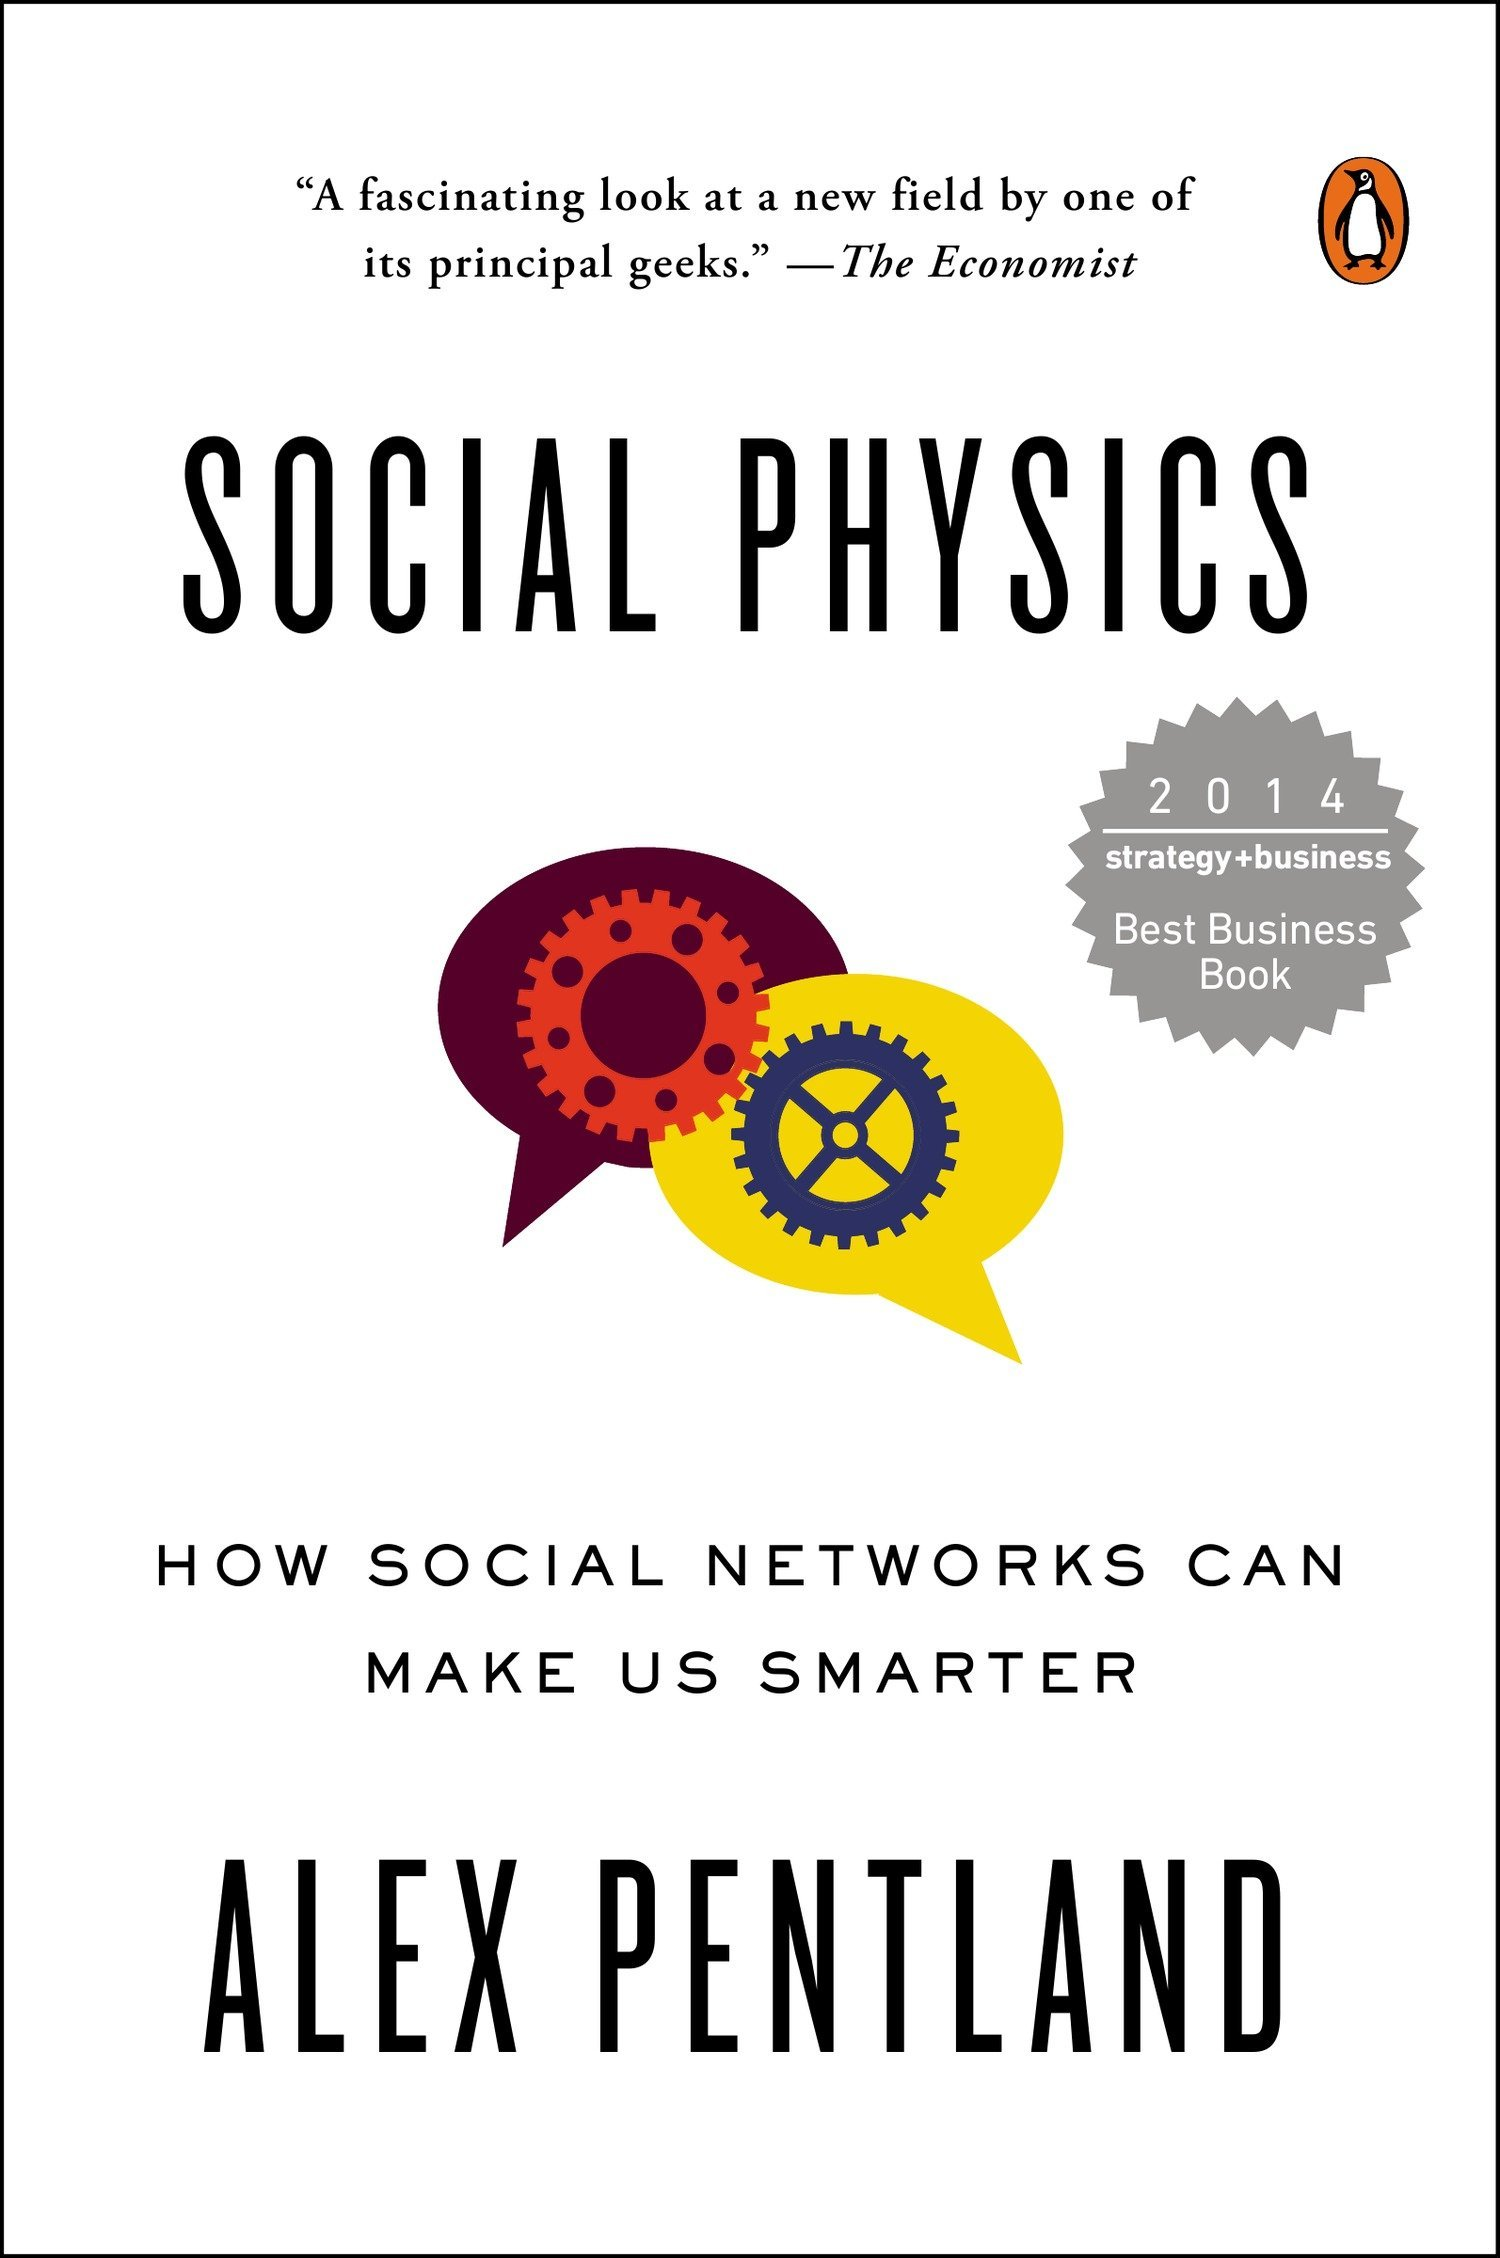 Image OfSocial Physics: How Social Networks Can Make Us Smarter